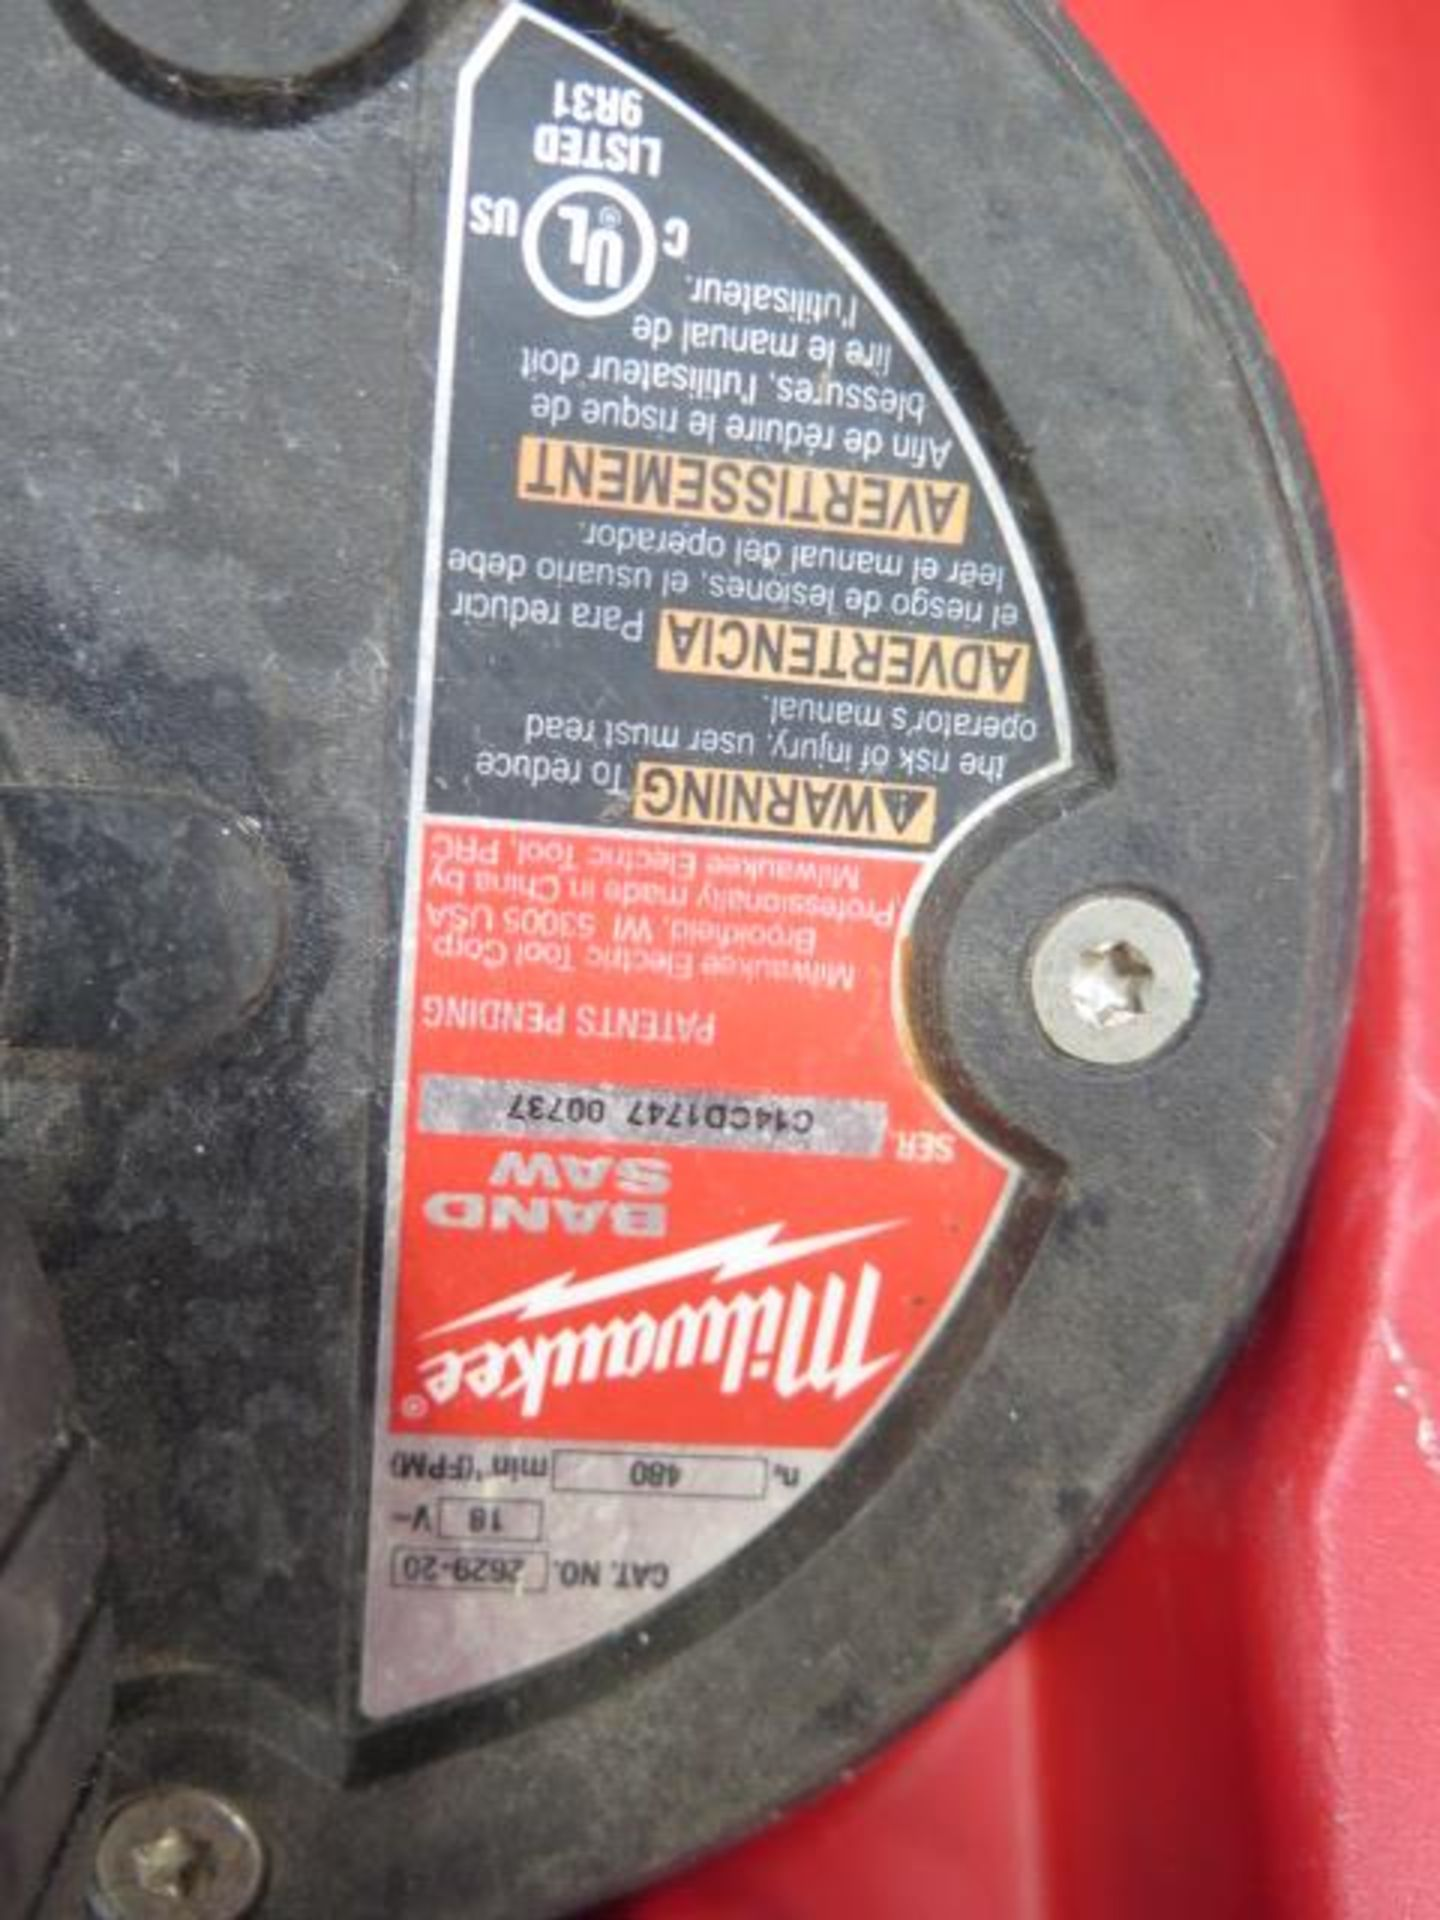 Milwaukee 18 Volt Compact Portable Band Saw Sets (2) (SOLD AS-IS - NO WARRANTY) - Image 6 of 10